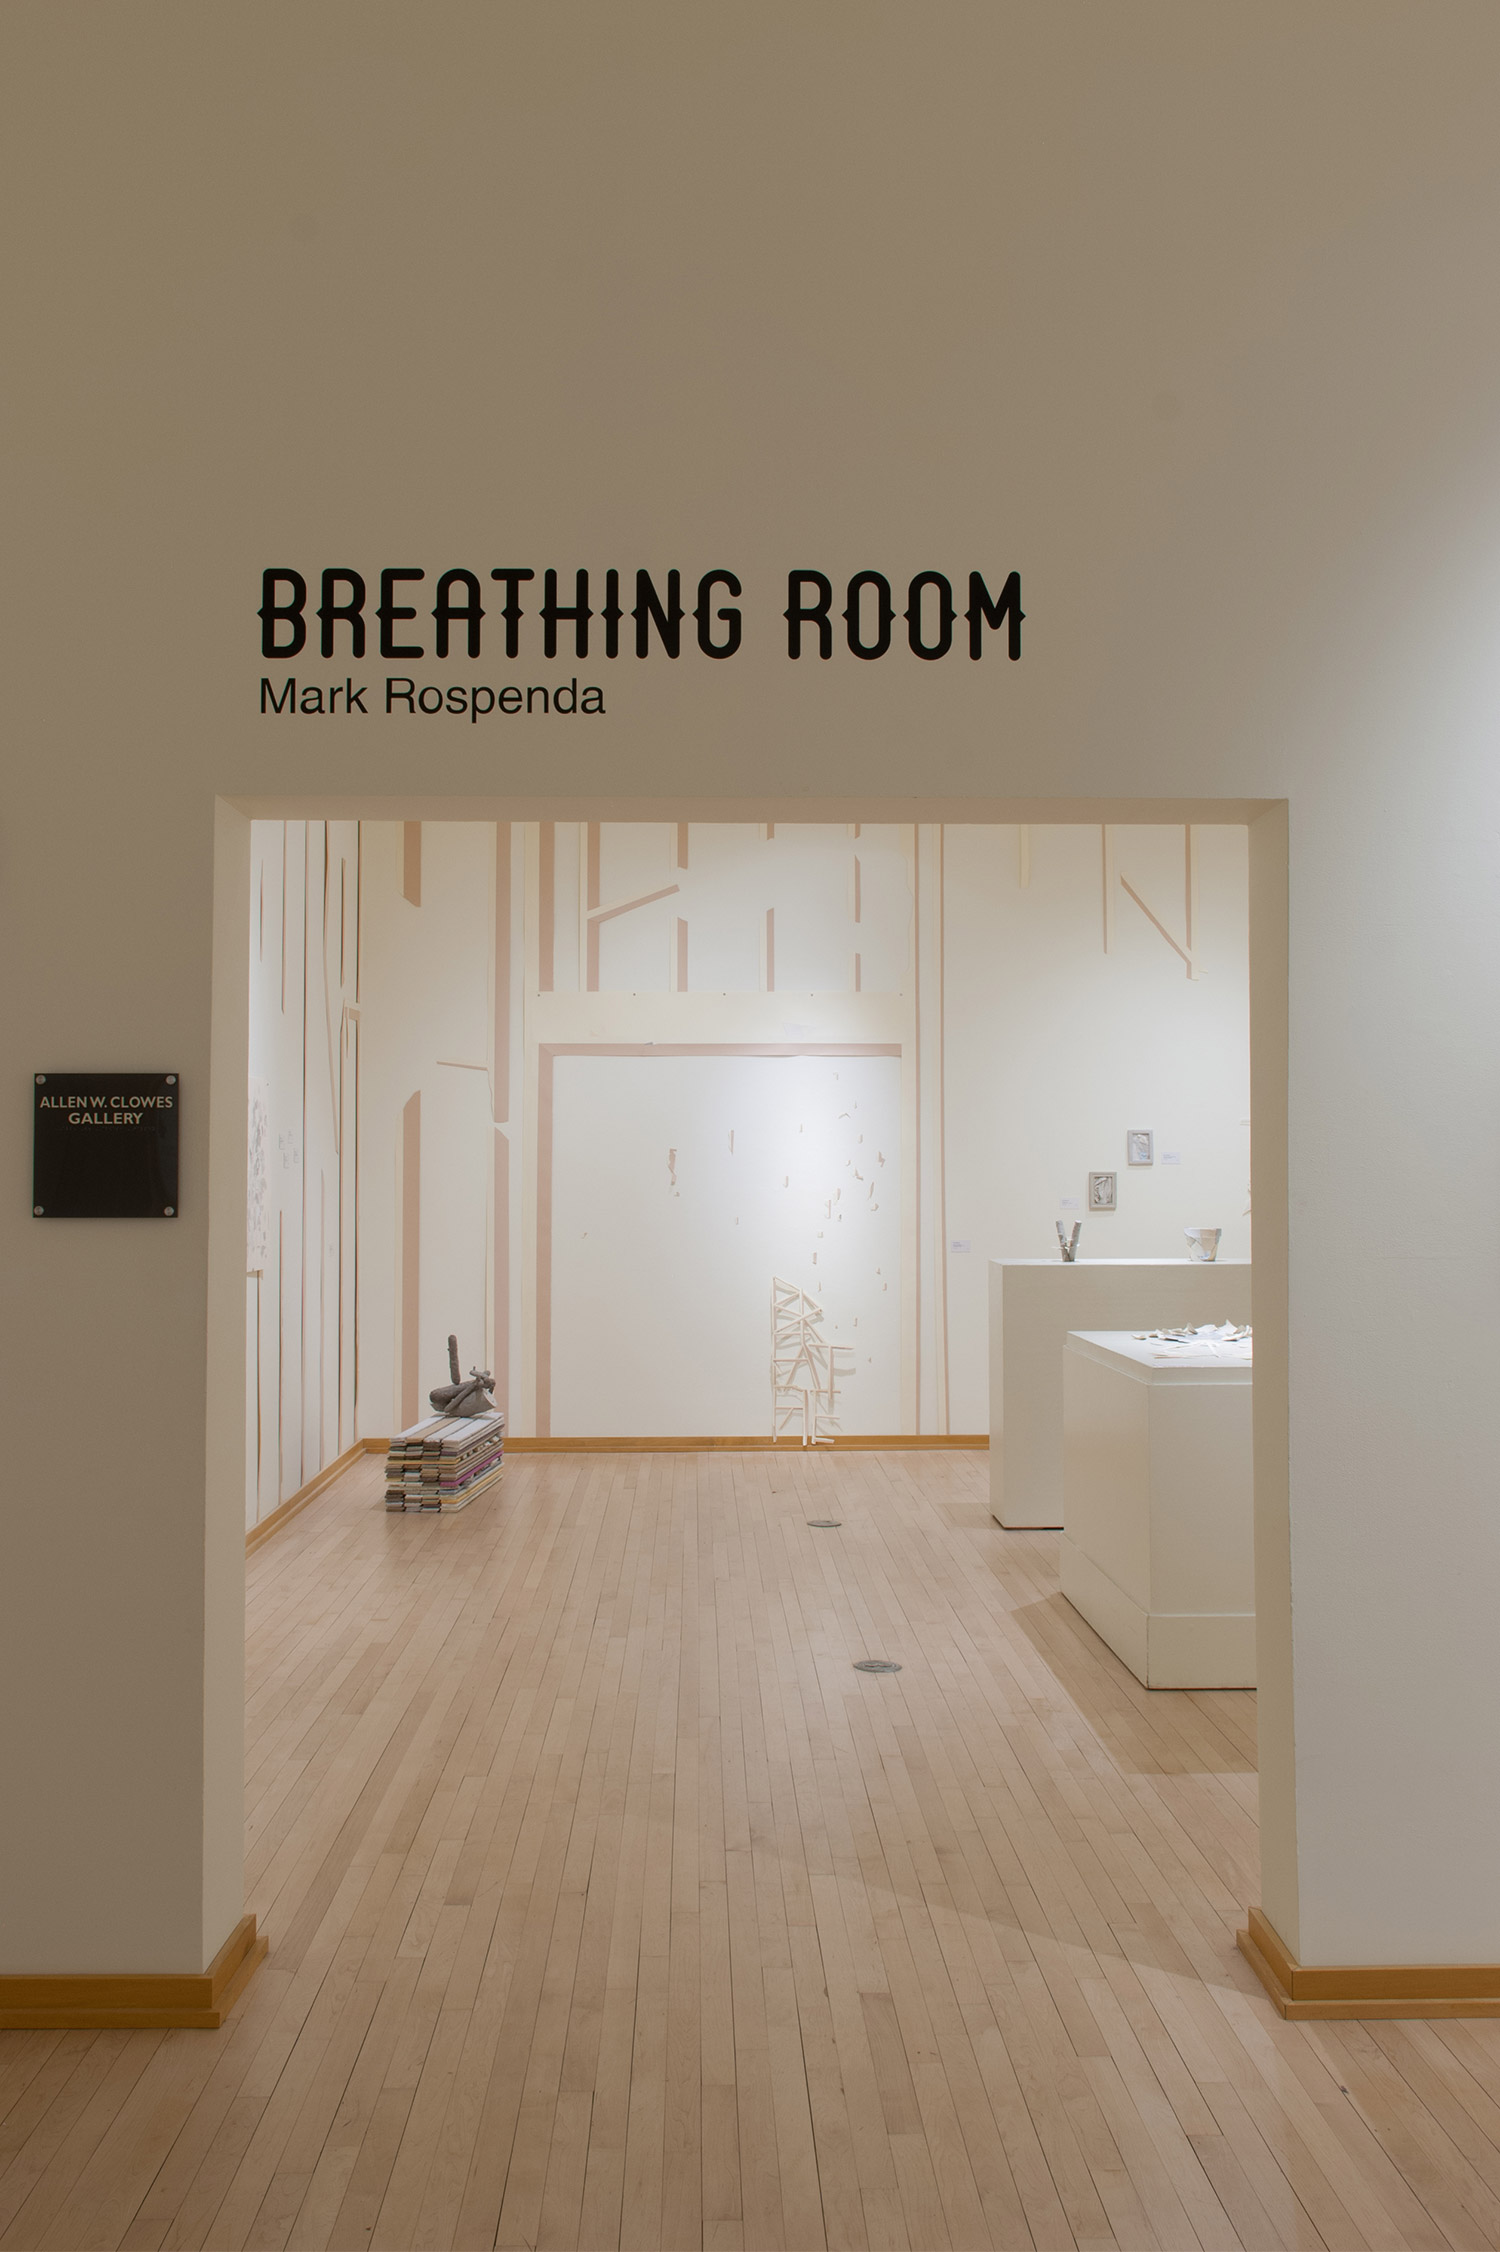 Breathing Room installation view